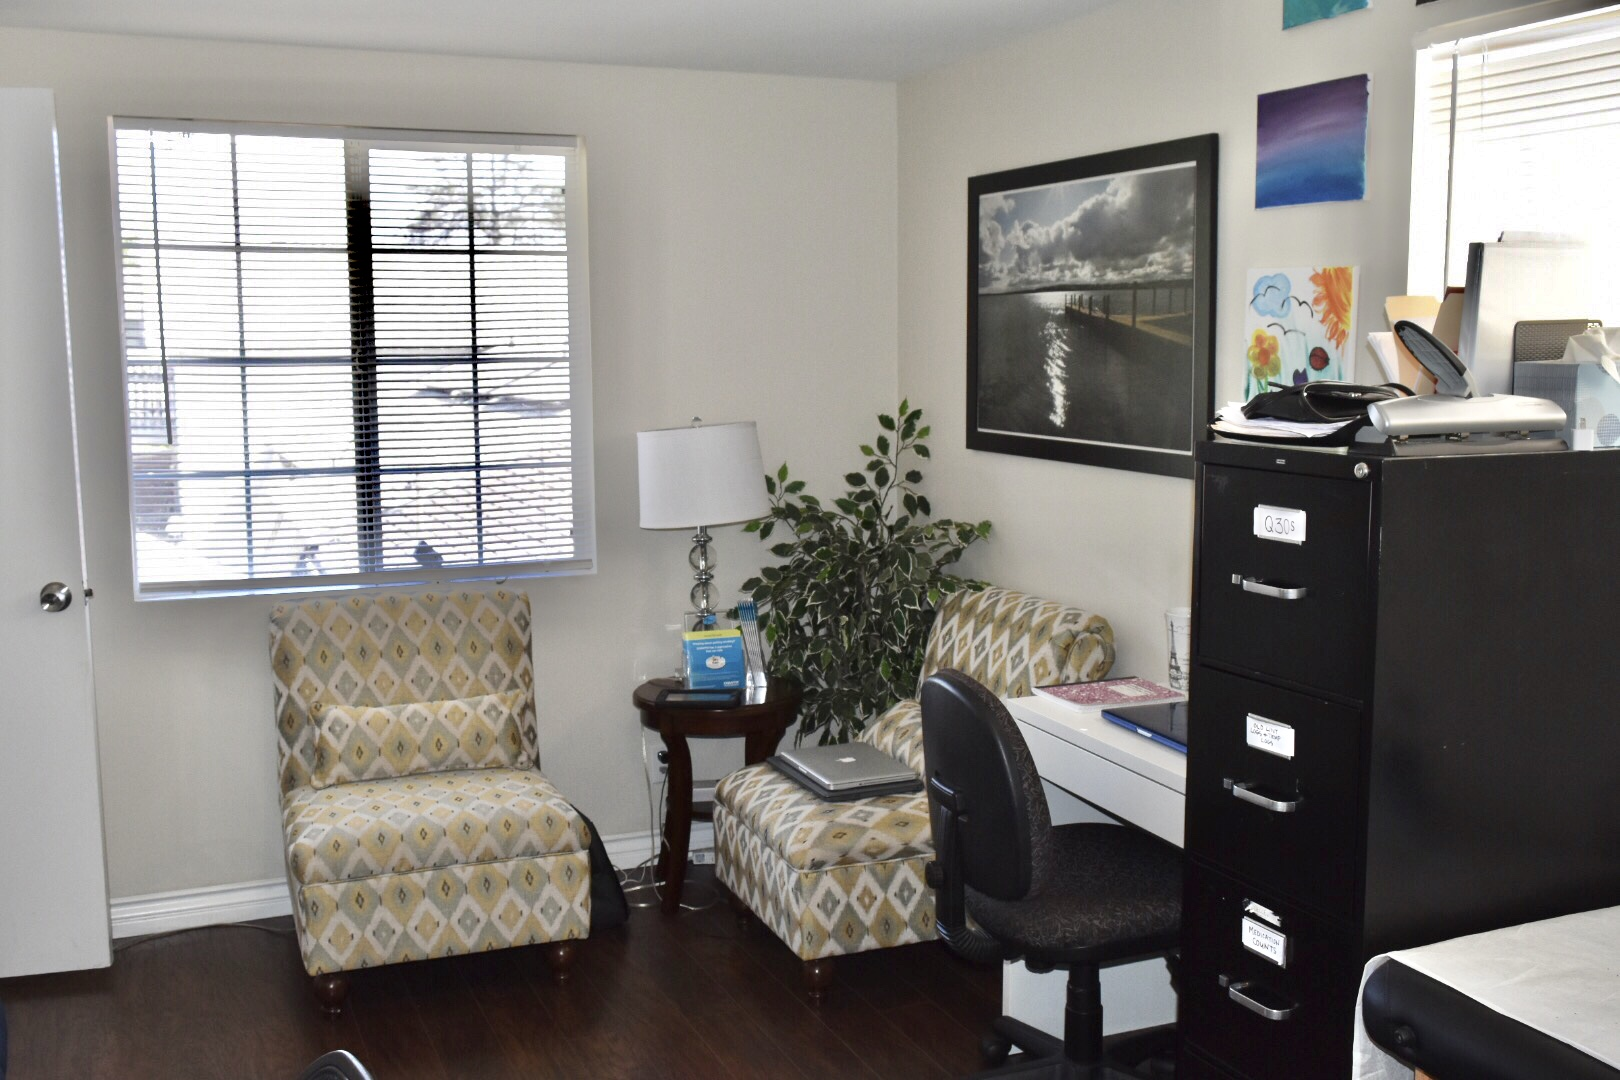 Addiction Treatment Clinical Room